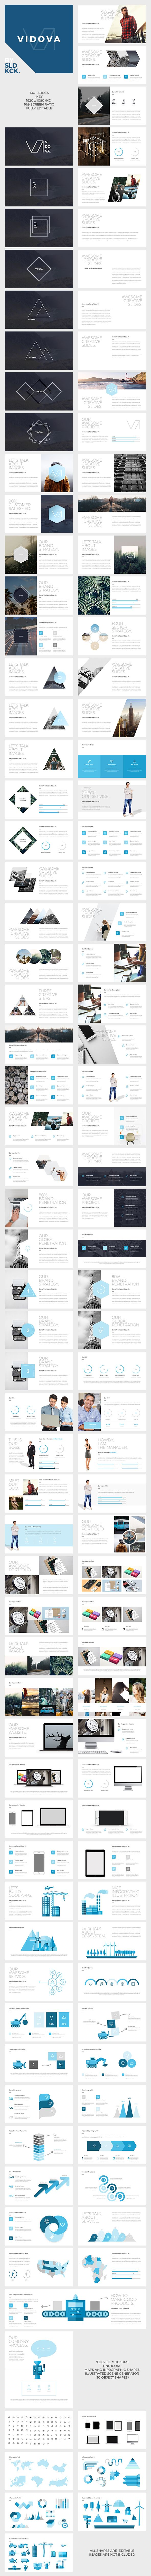 VIDOVA - Modern Keynote Presentation  #professional #simple #simple • Available here → http://graphicriver.net/item/vidova-modern-keynote-presentation/15499457?ref=pxcr